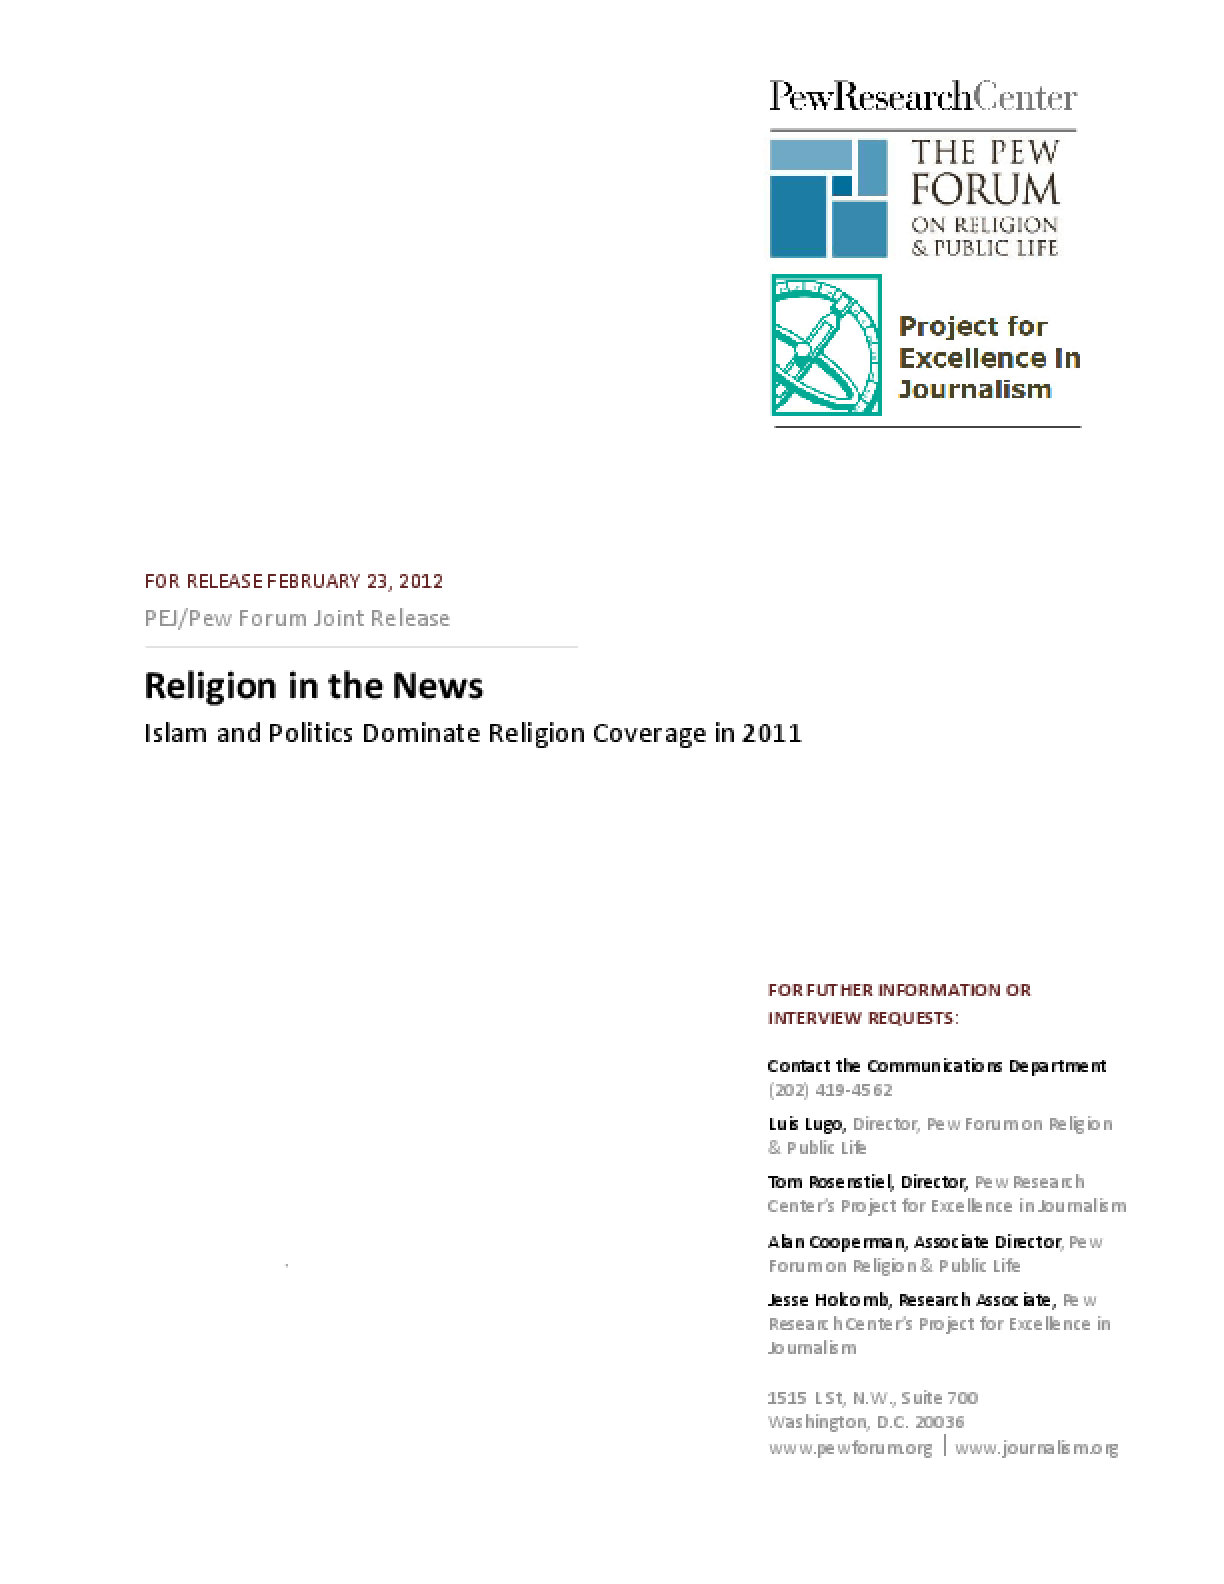 Religion in the News: Islam and Politics Dominate Religion Coverage in 2011